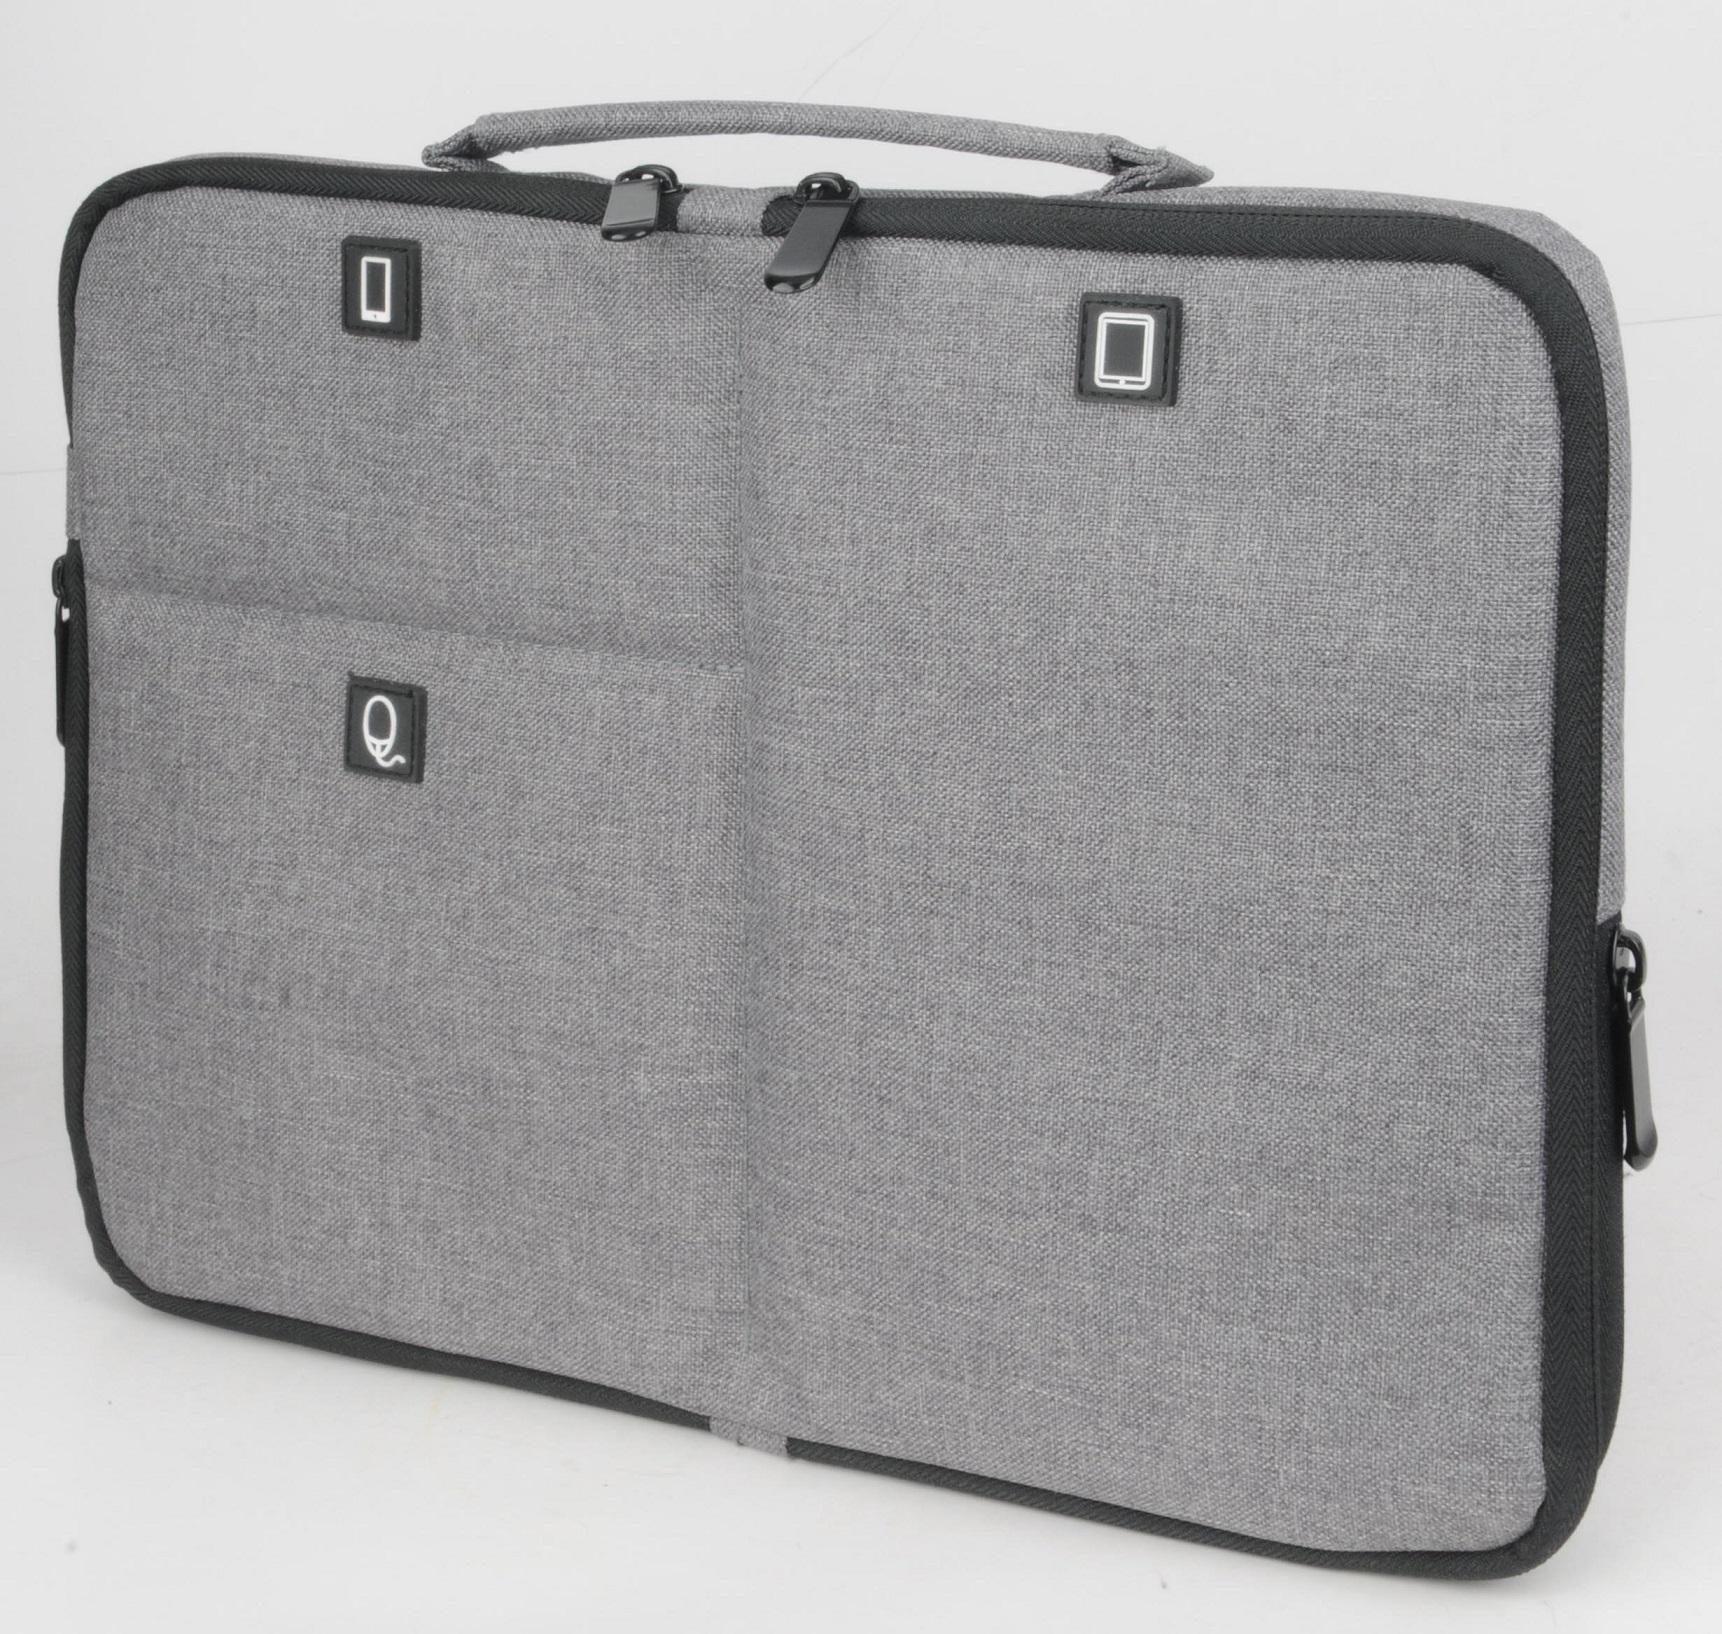 Techwaves 13.3-inch Multifunctional Laptop Sleeve with Handle, Water Resistant, Shock Resistant, for MacBook, MacBook Air, MacBook Pro, HP, Dell, Lenovo, Acer, ASUS, Toshiba, Notebook Chromebook Protective Carrying Case, Grey